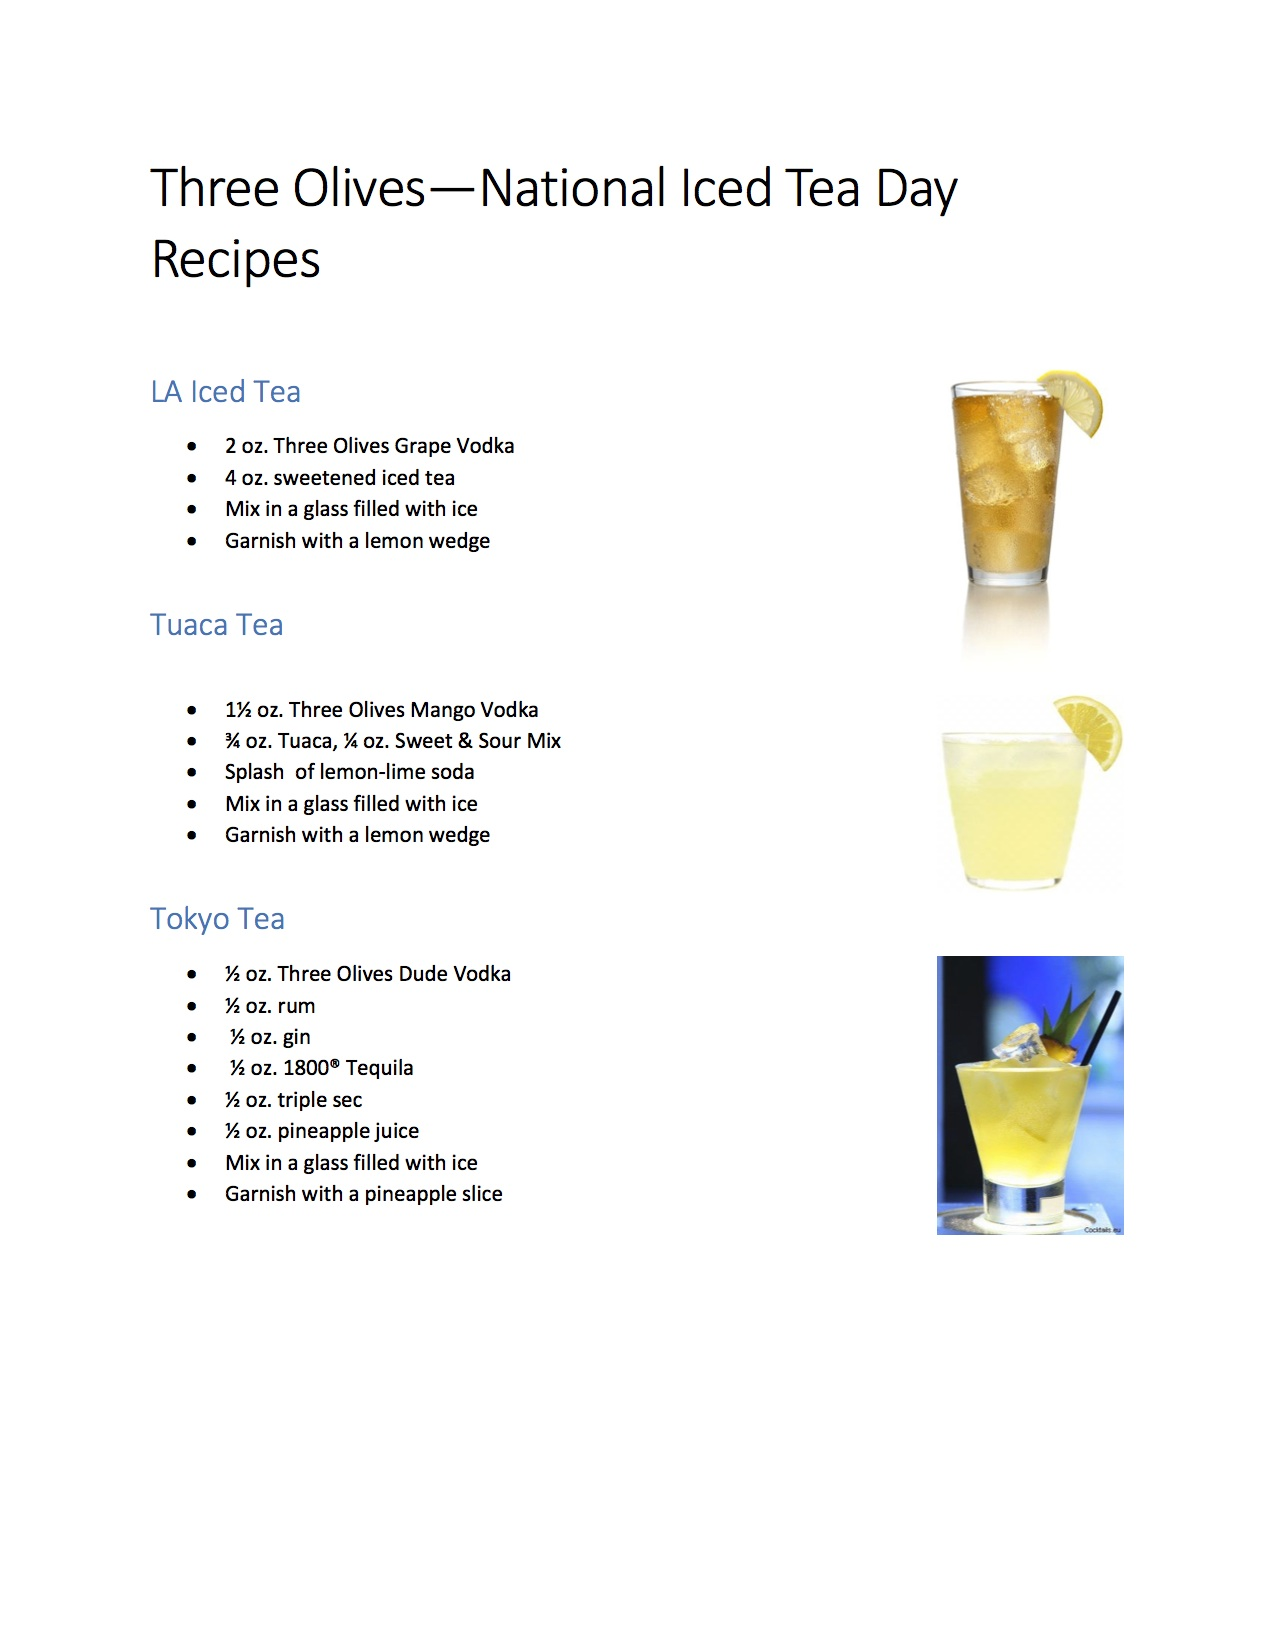 Three olives vodka national iced tea day recipes oc mom blog for California iced tea recipe